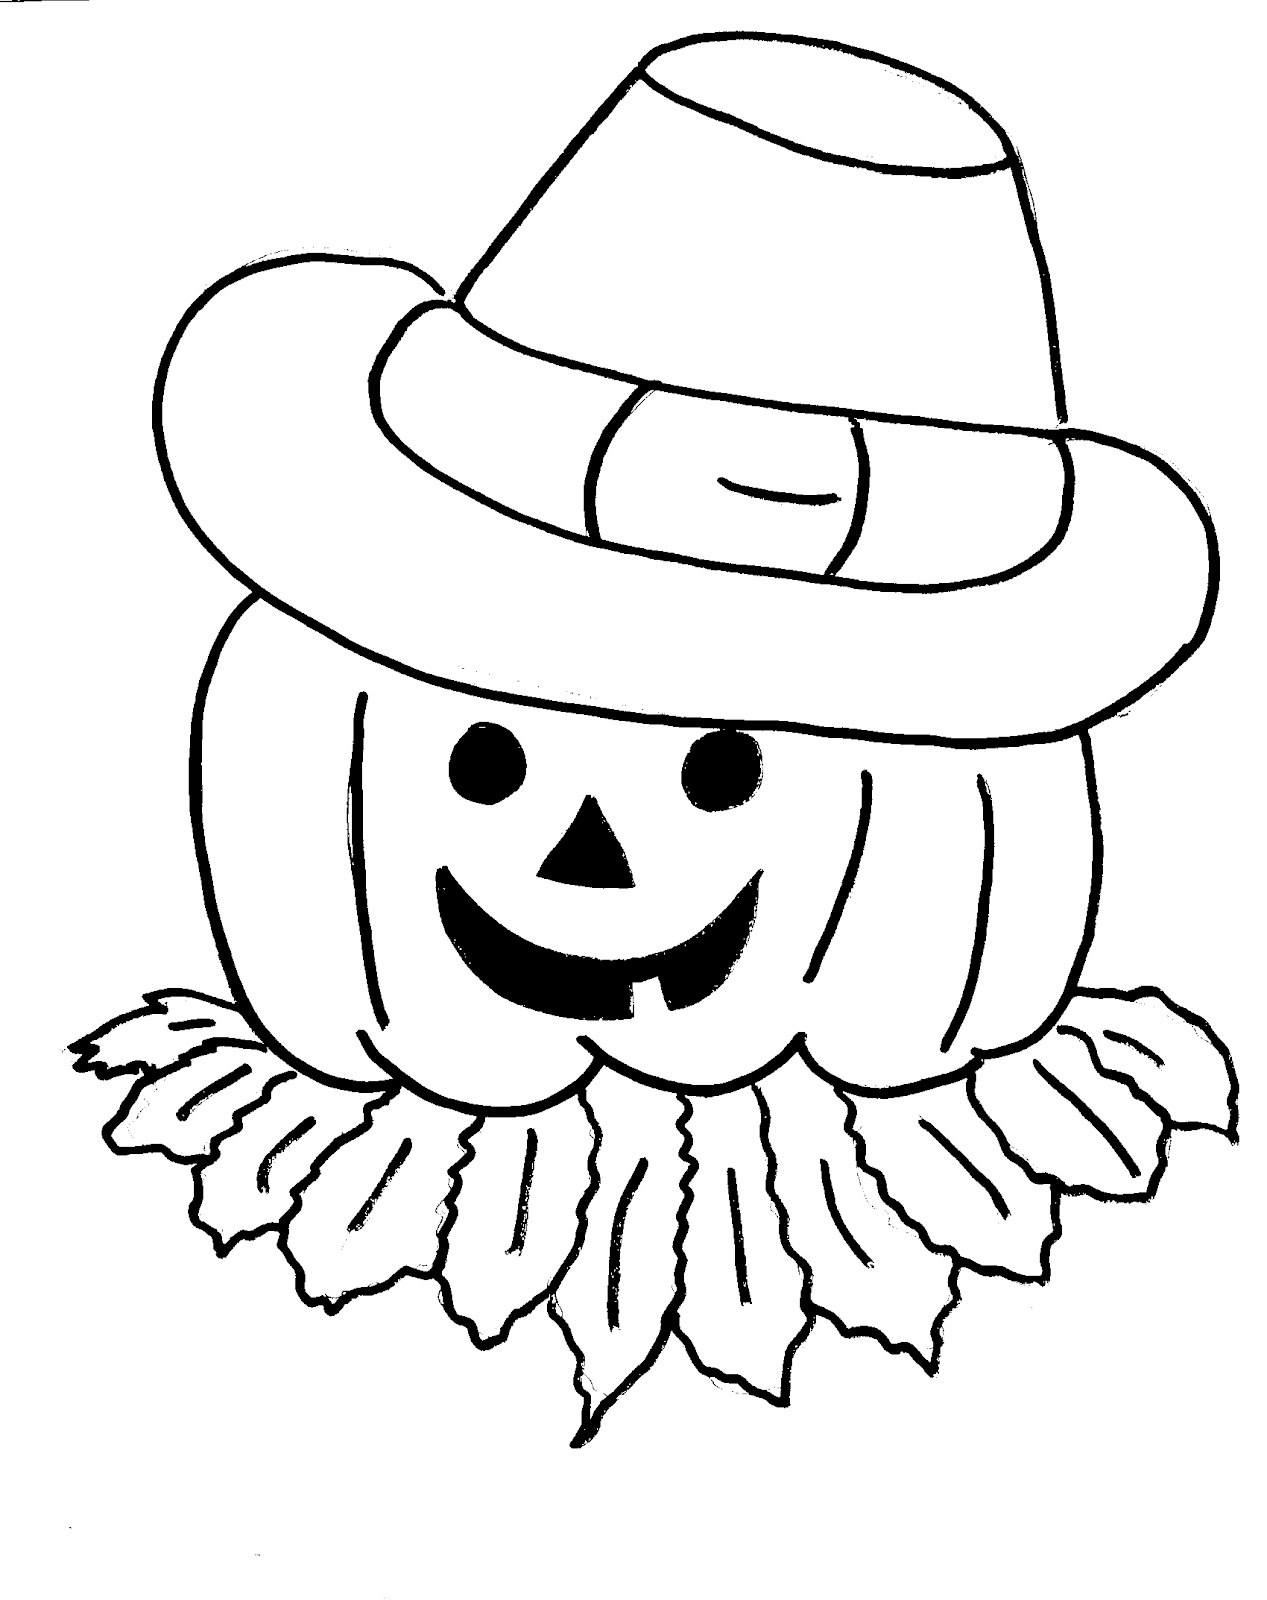 Thanksgiving Abstract Coloring Pages : Thanksgiving coloring pagesfree pages for kids